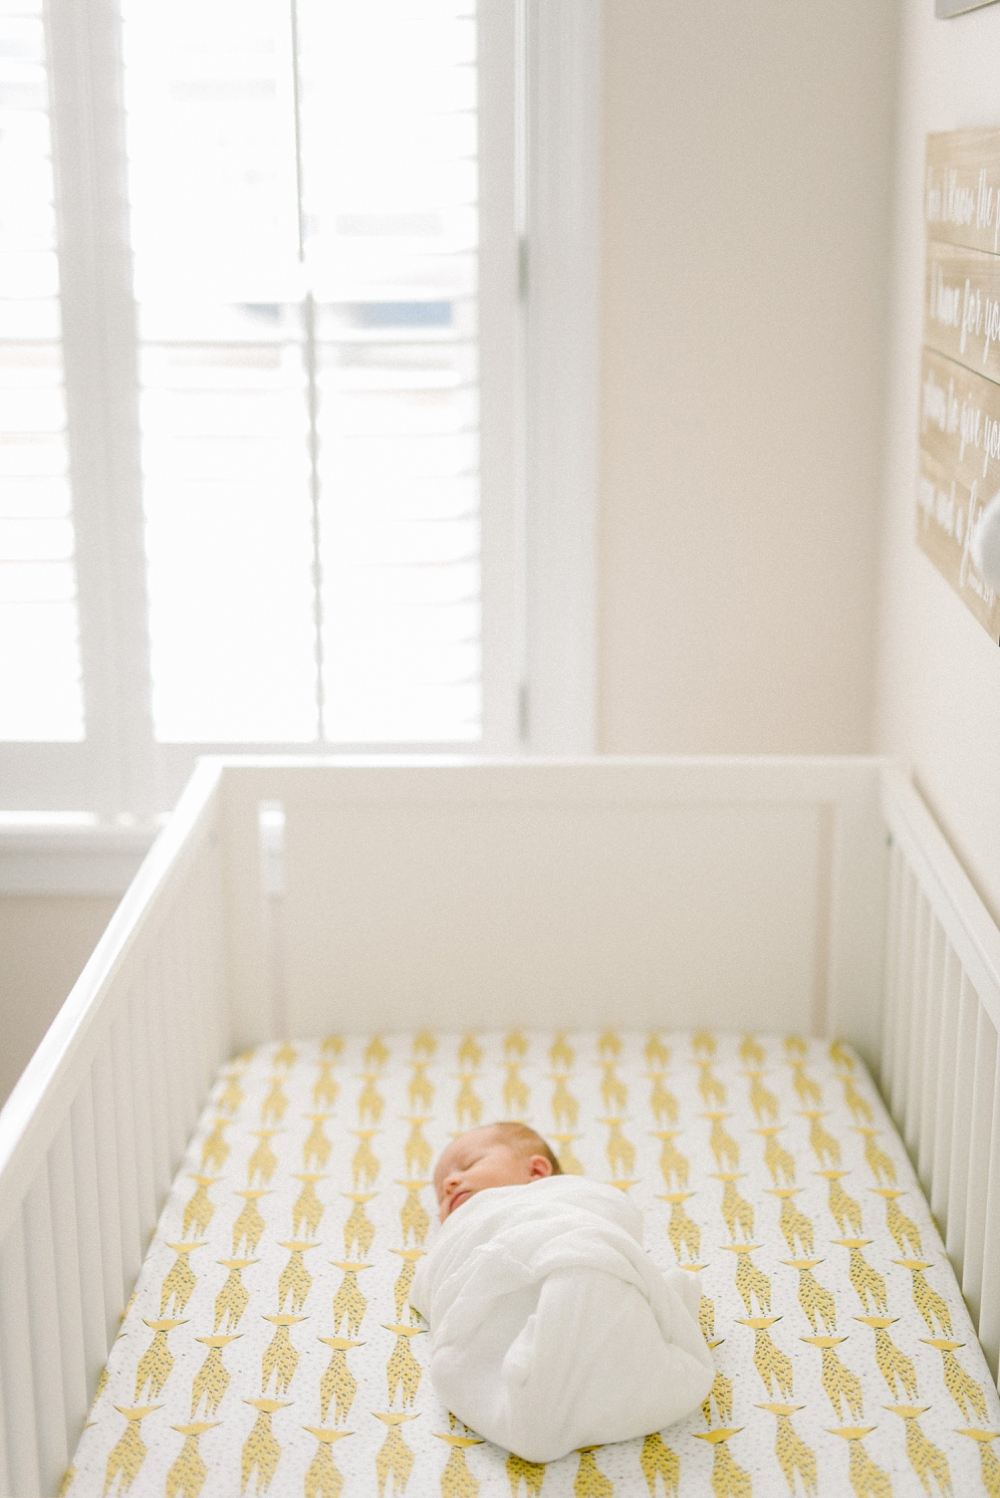 richmond_newborn_lifestyle_photography_fine_art_film_0005.jpg